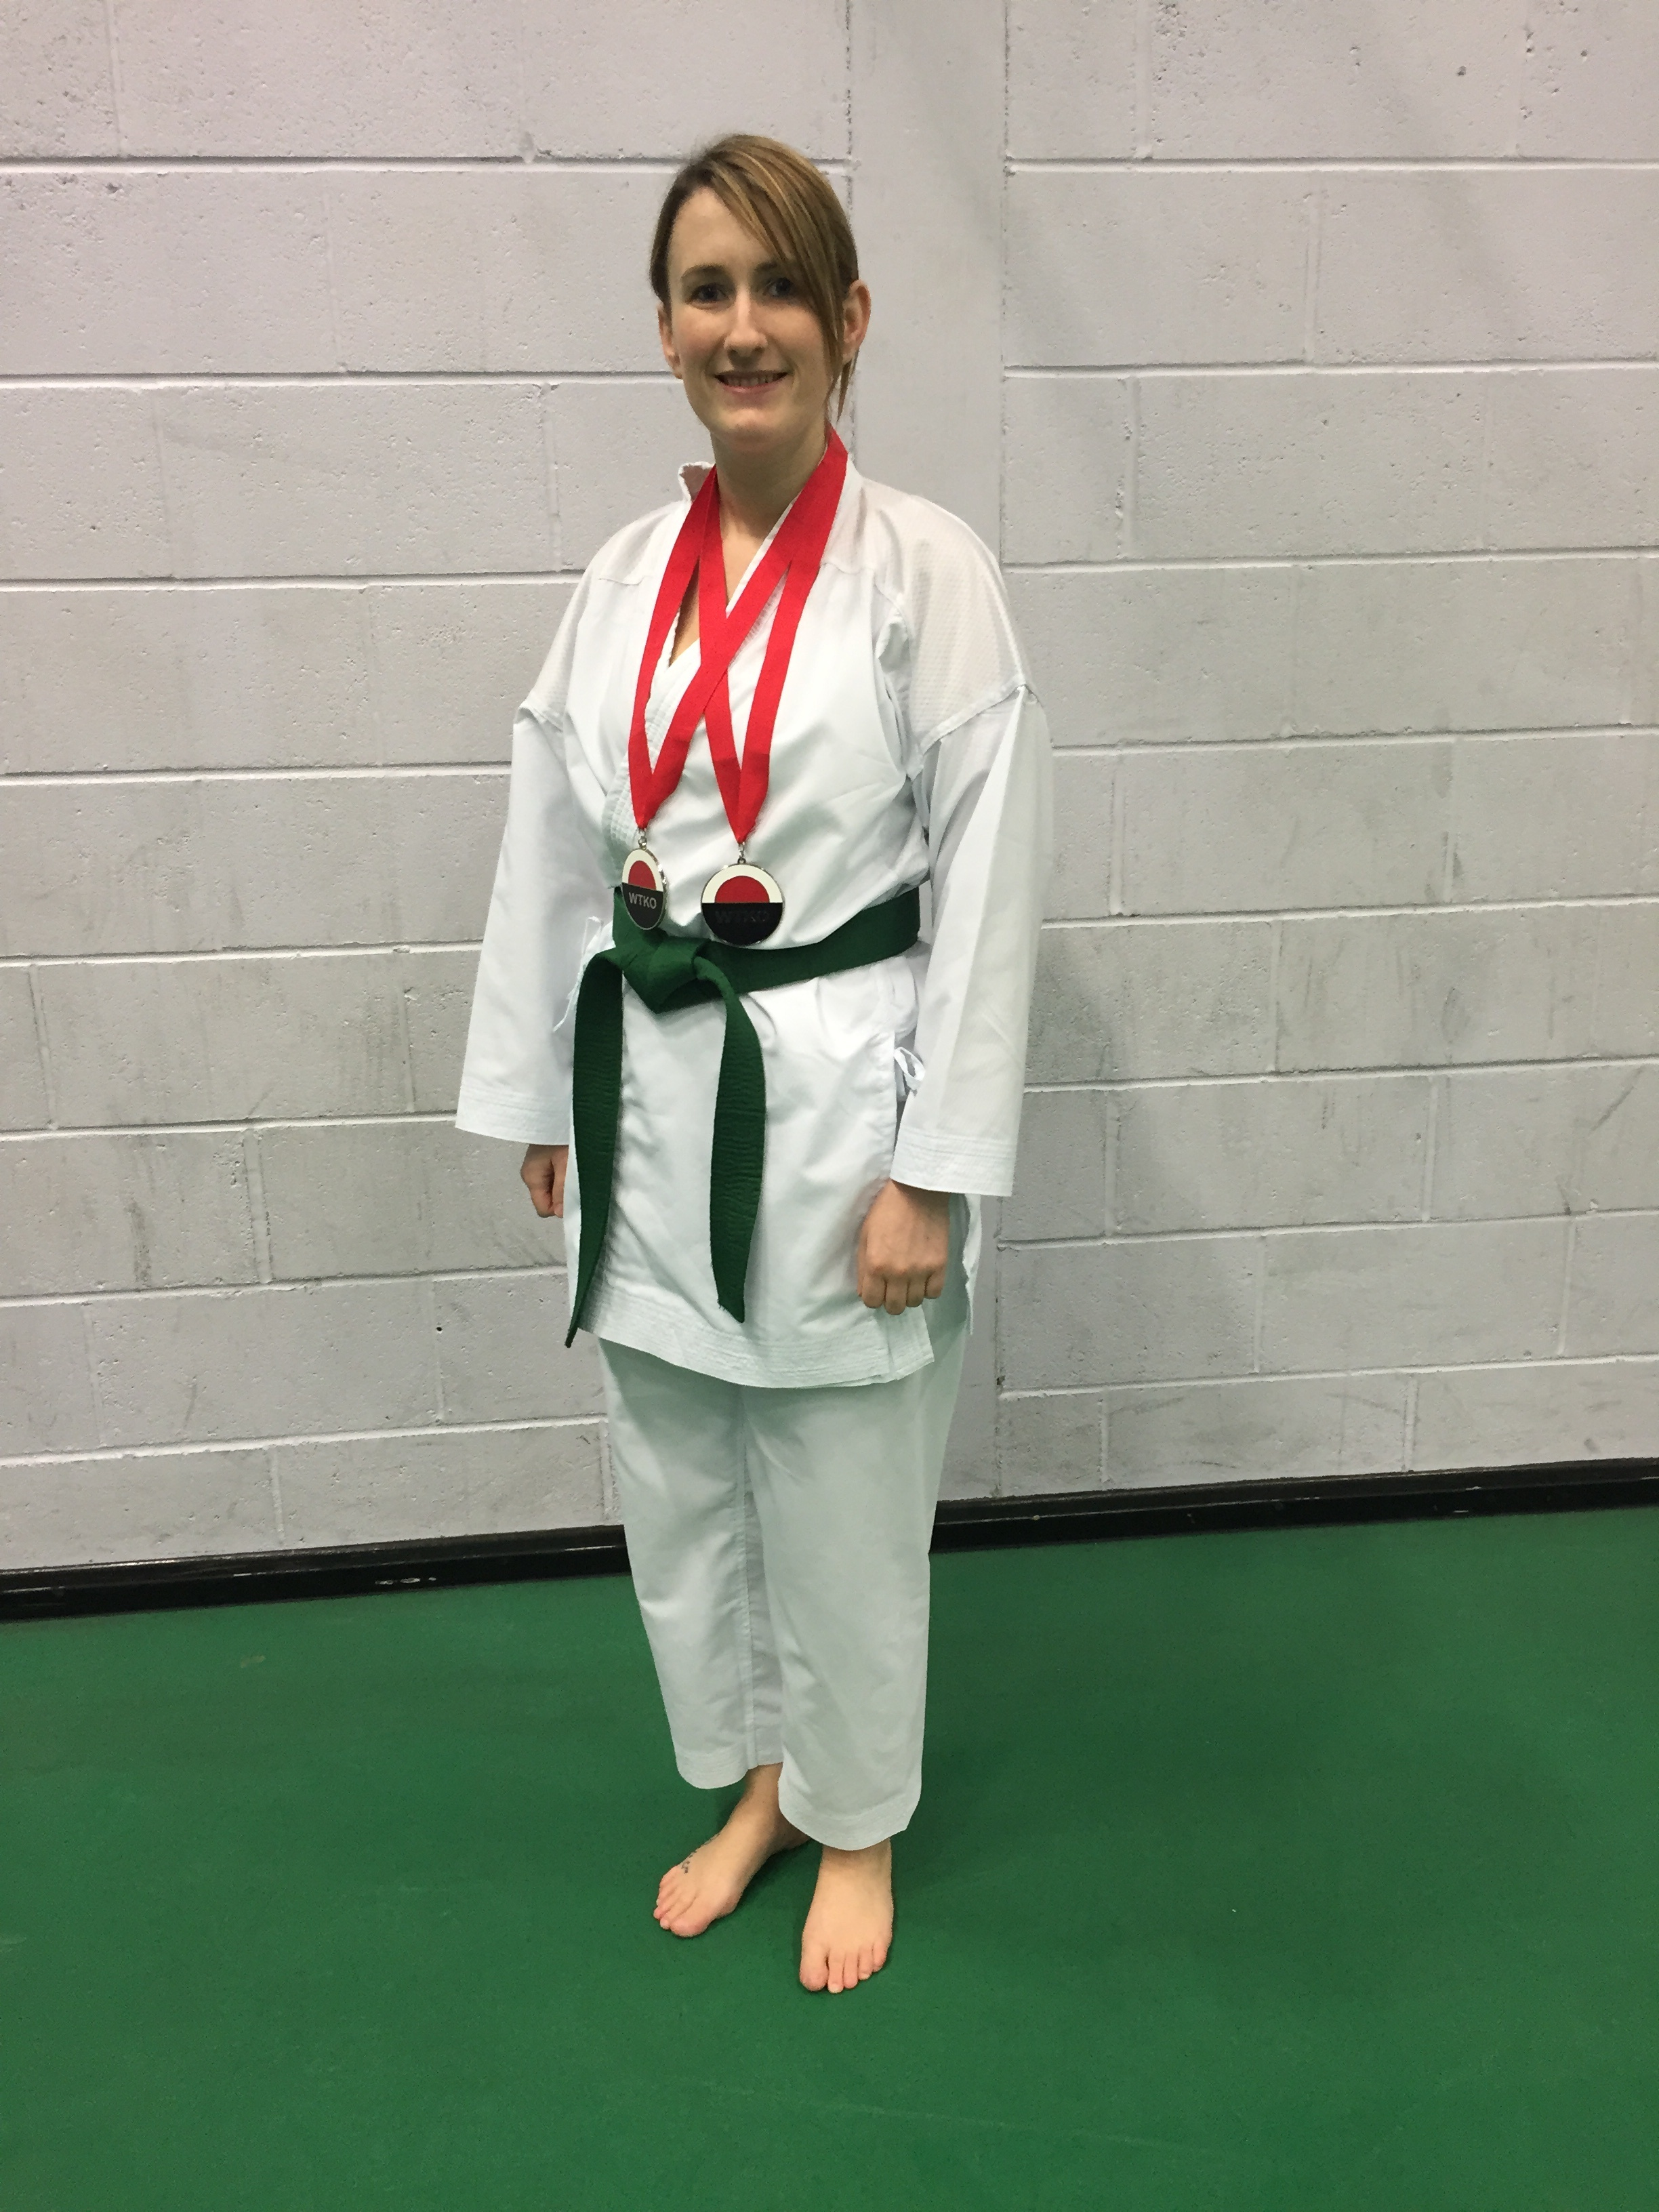 Kirsty with two silver medals from WKTO Nationals